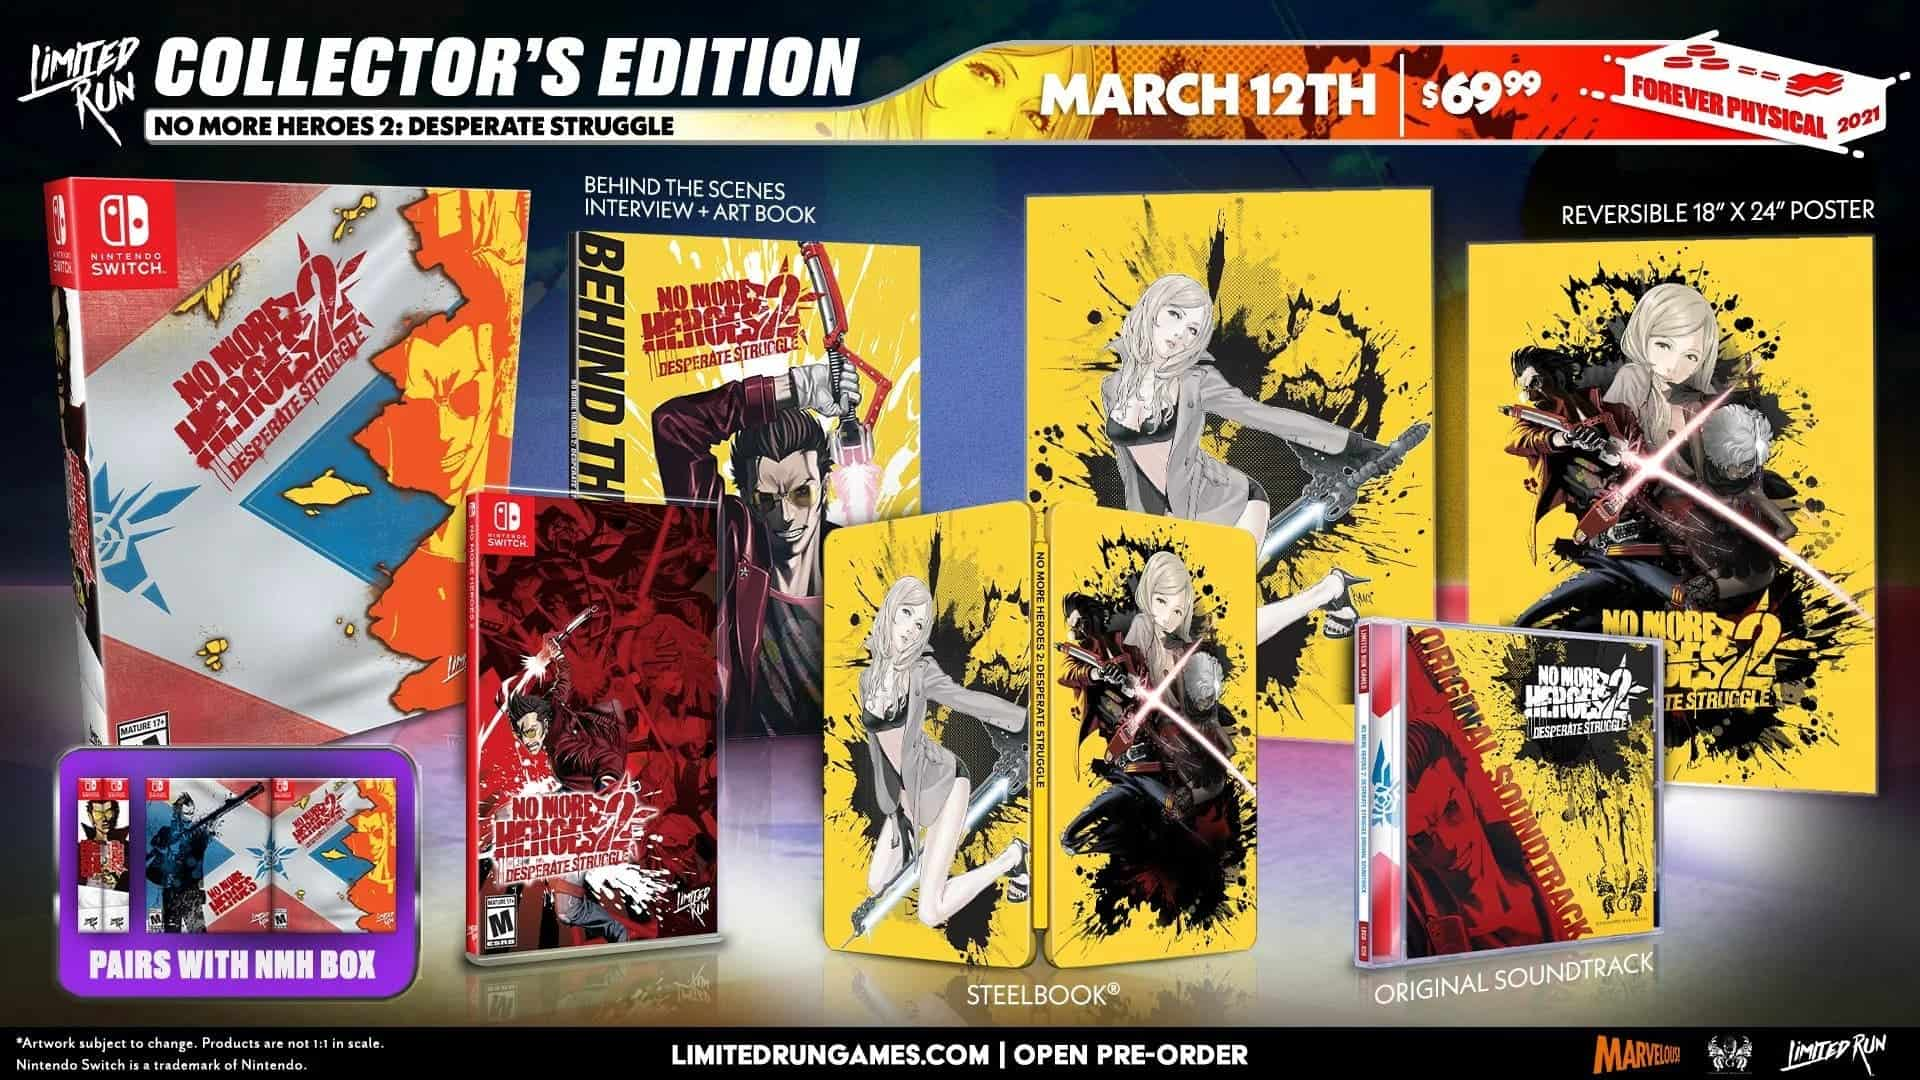 No More Heroes 2 Collector's Edition